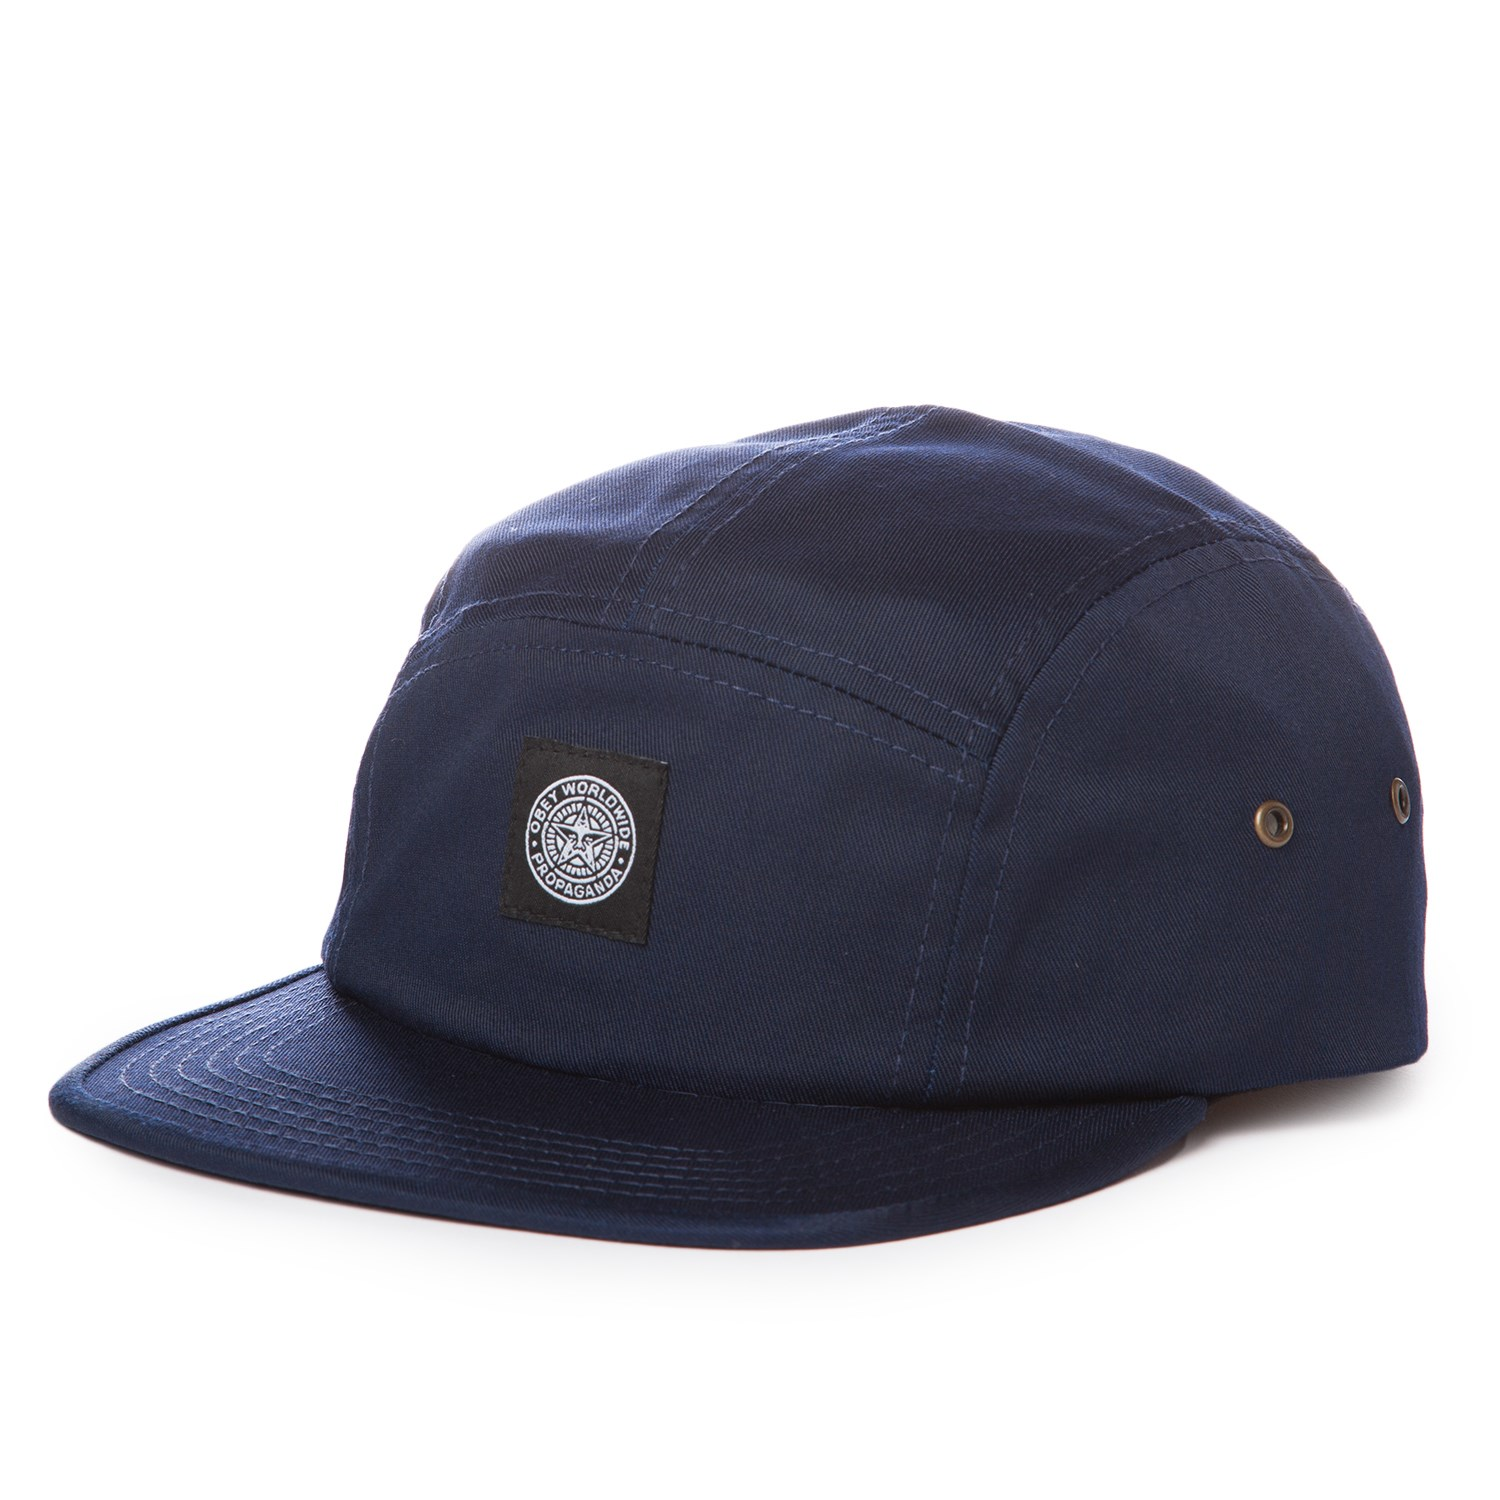 Obey Clothing Worldwide Seal 5 Panel Hat  f7f49e0ab0dc